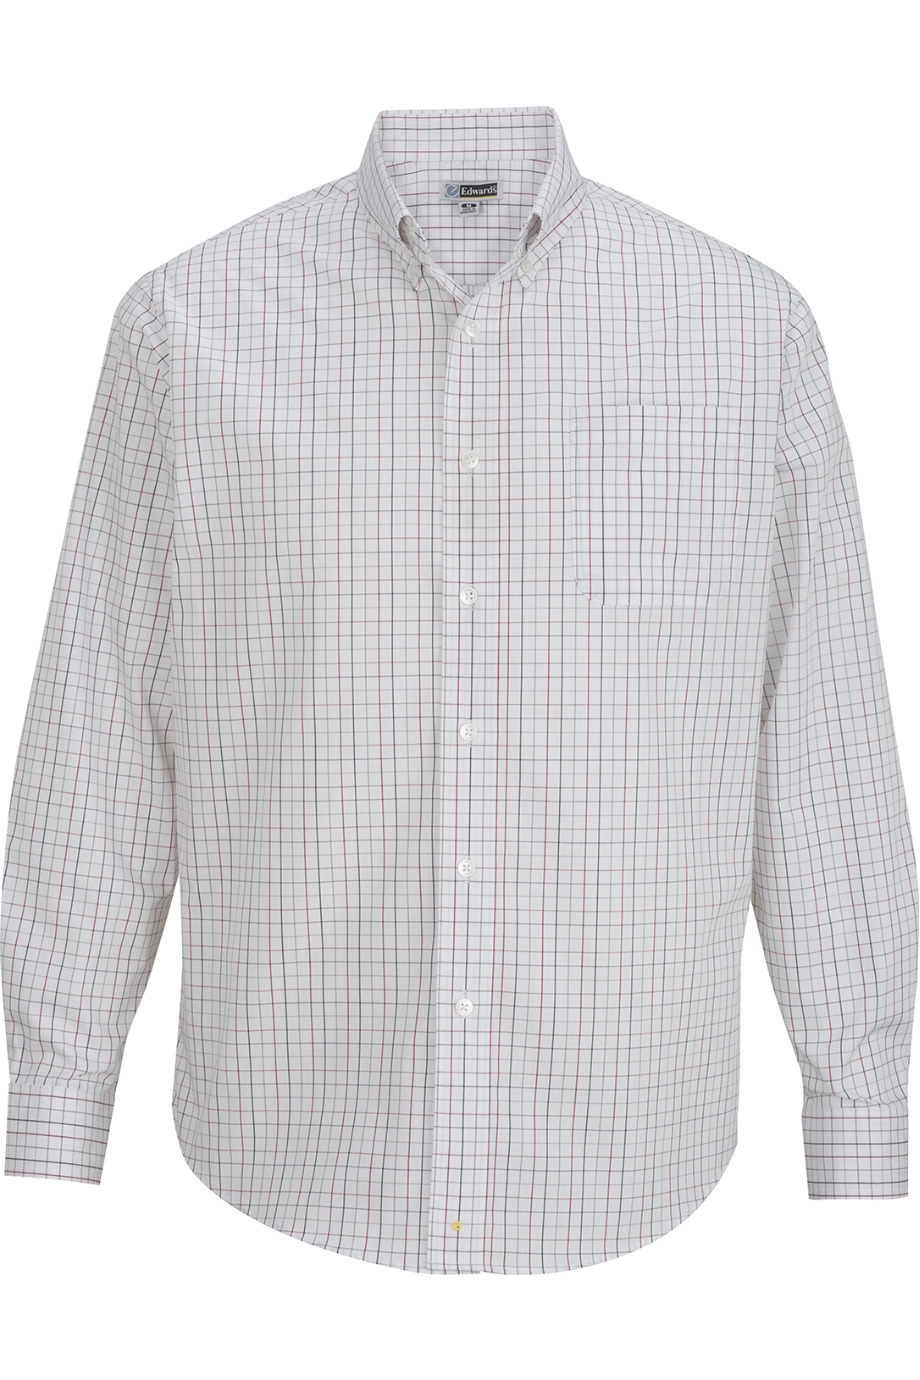 Edwards Garment 1973 - Men's Tattersall Poplin Shirt